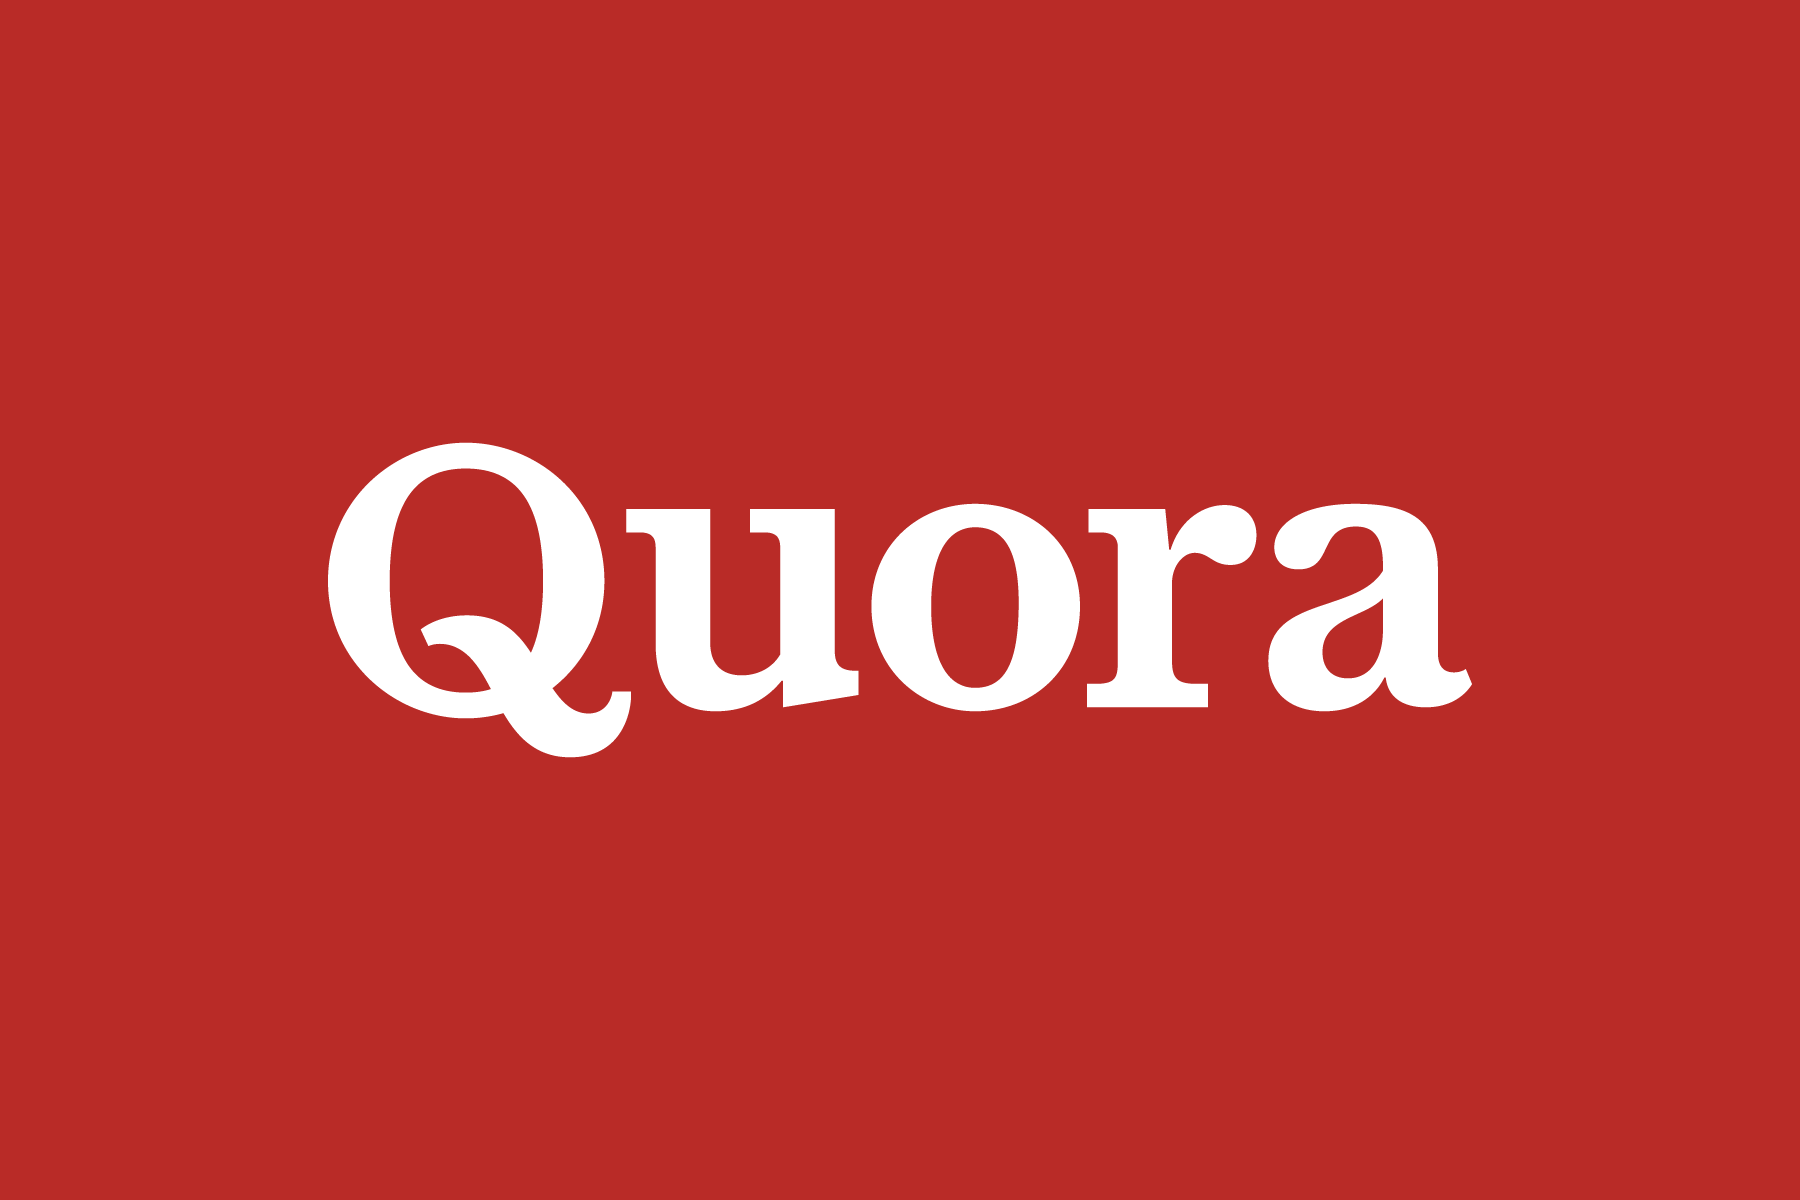 Quora brand system - At Quora, I designed and implemented a full brand system from the ground up, including a full logo redesign. Read about the logo design process here.